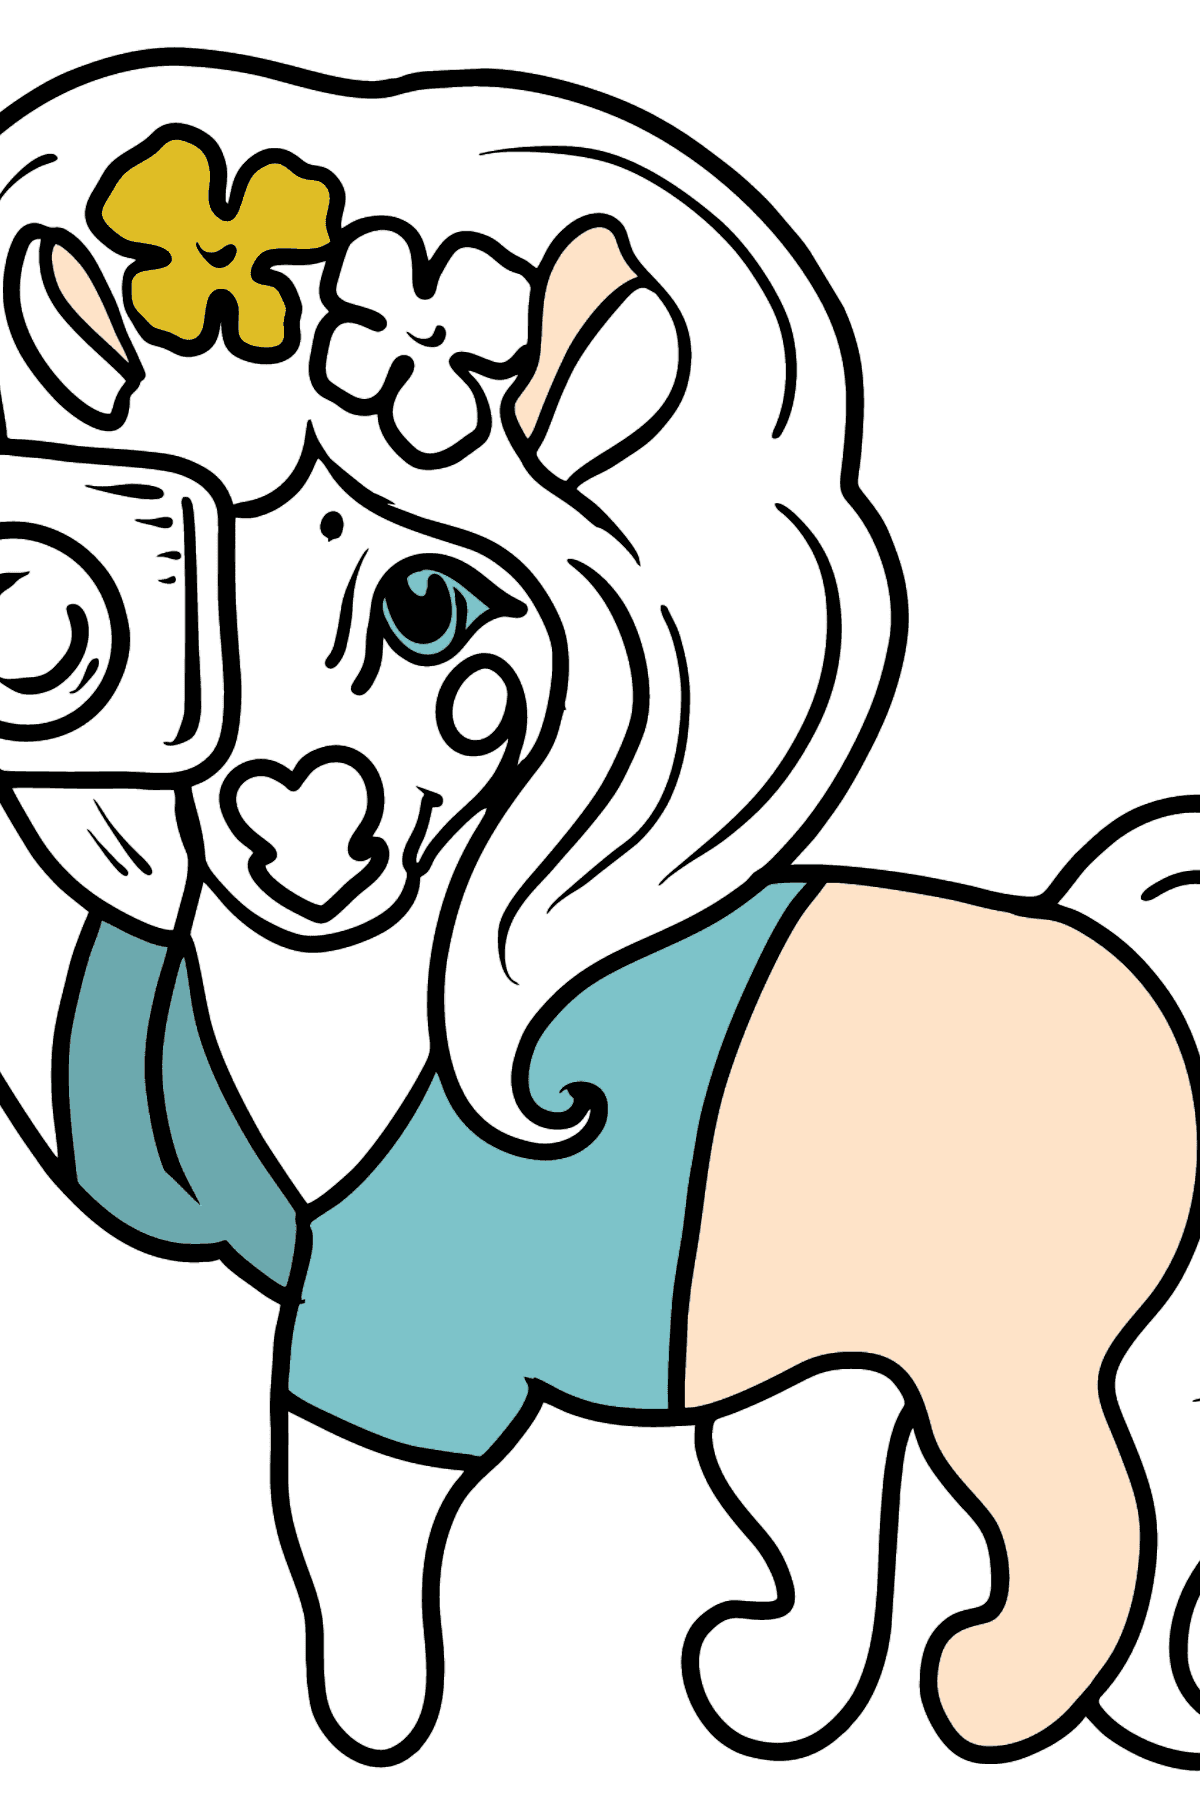 Pony Photographer coloring page - Coloring Pages for Kids